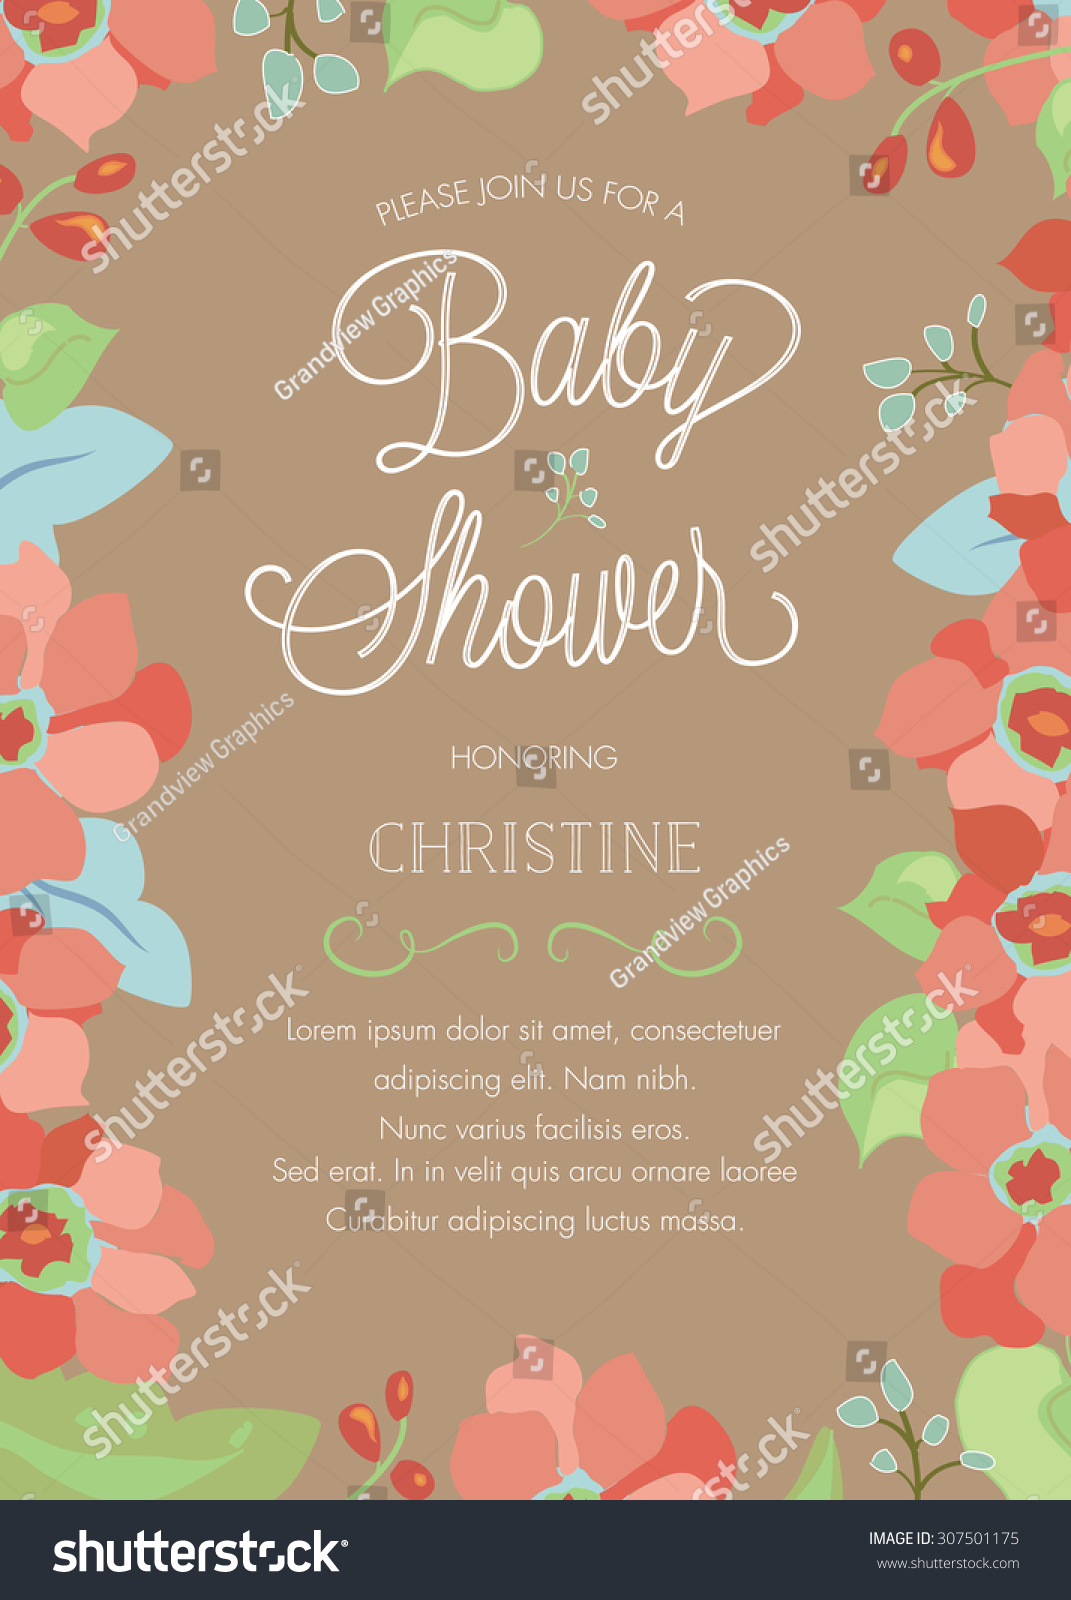 Customizable floral baby shower invitation template stock vector customizable floral baby shower invitation template vector stopboris Choice Image